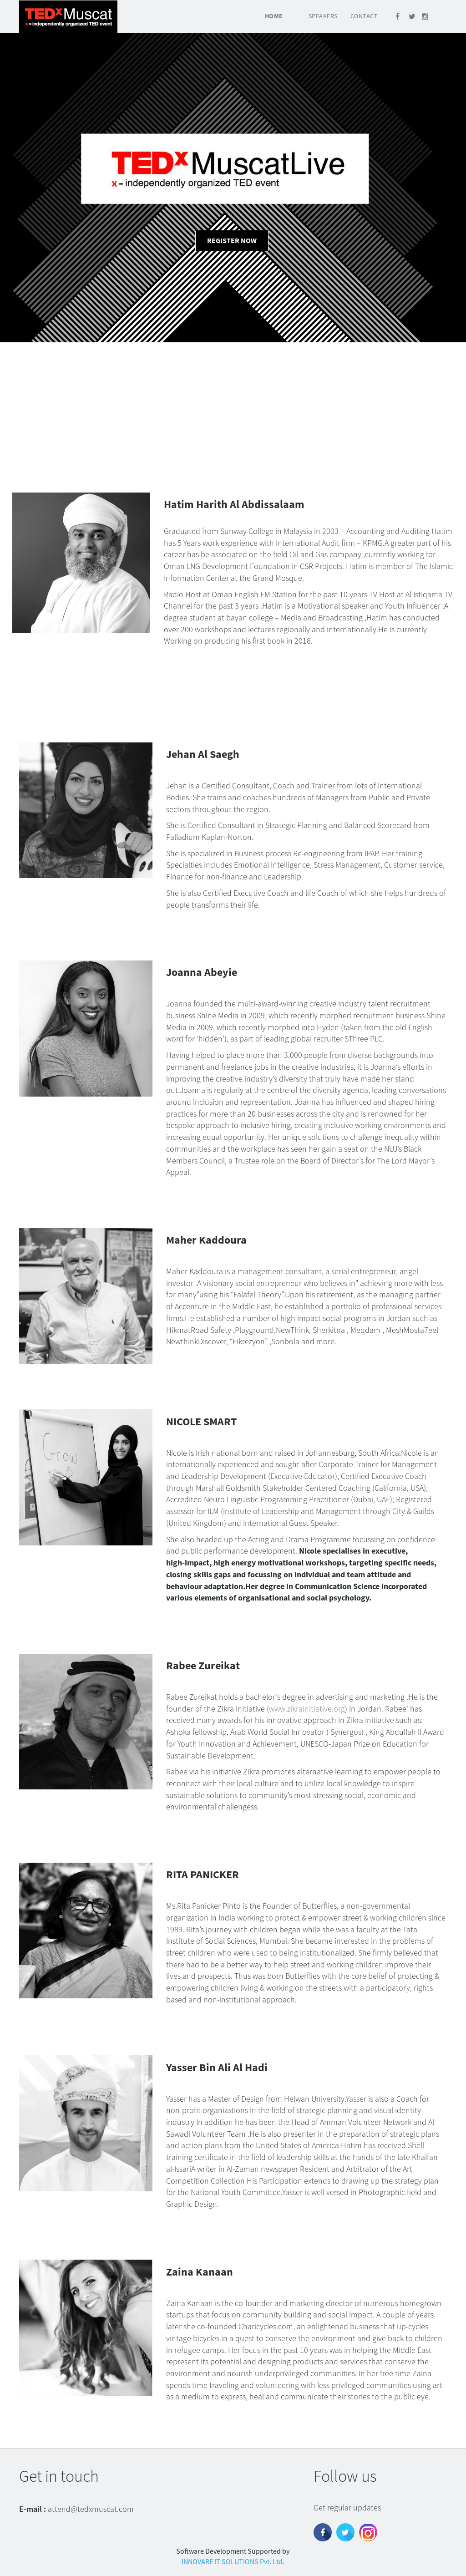 Tedxmuscat Competitors, Revenue and Employees - Owler Company Profile